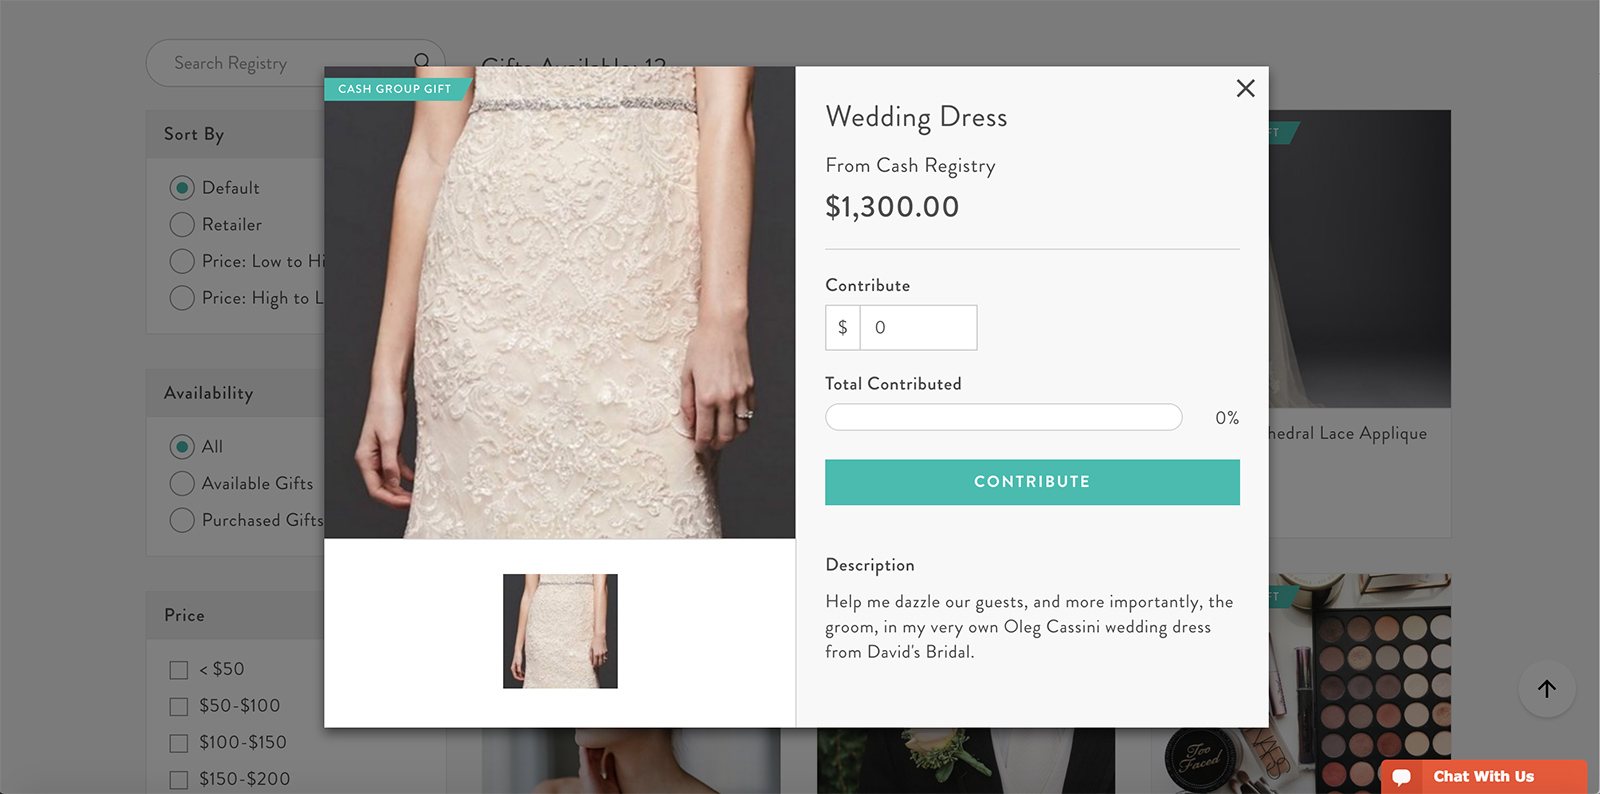 Screen shot of sample wedding dress cash registry